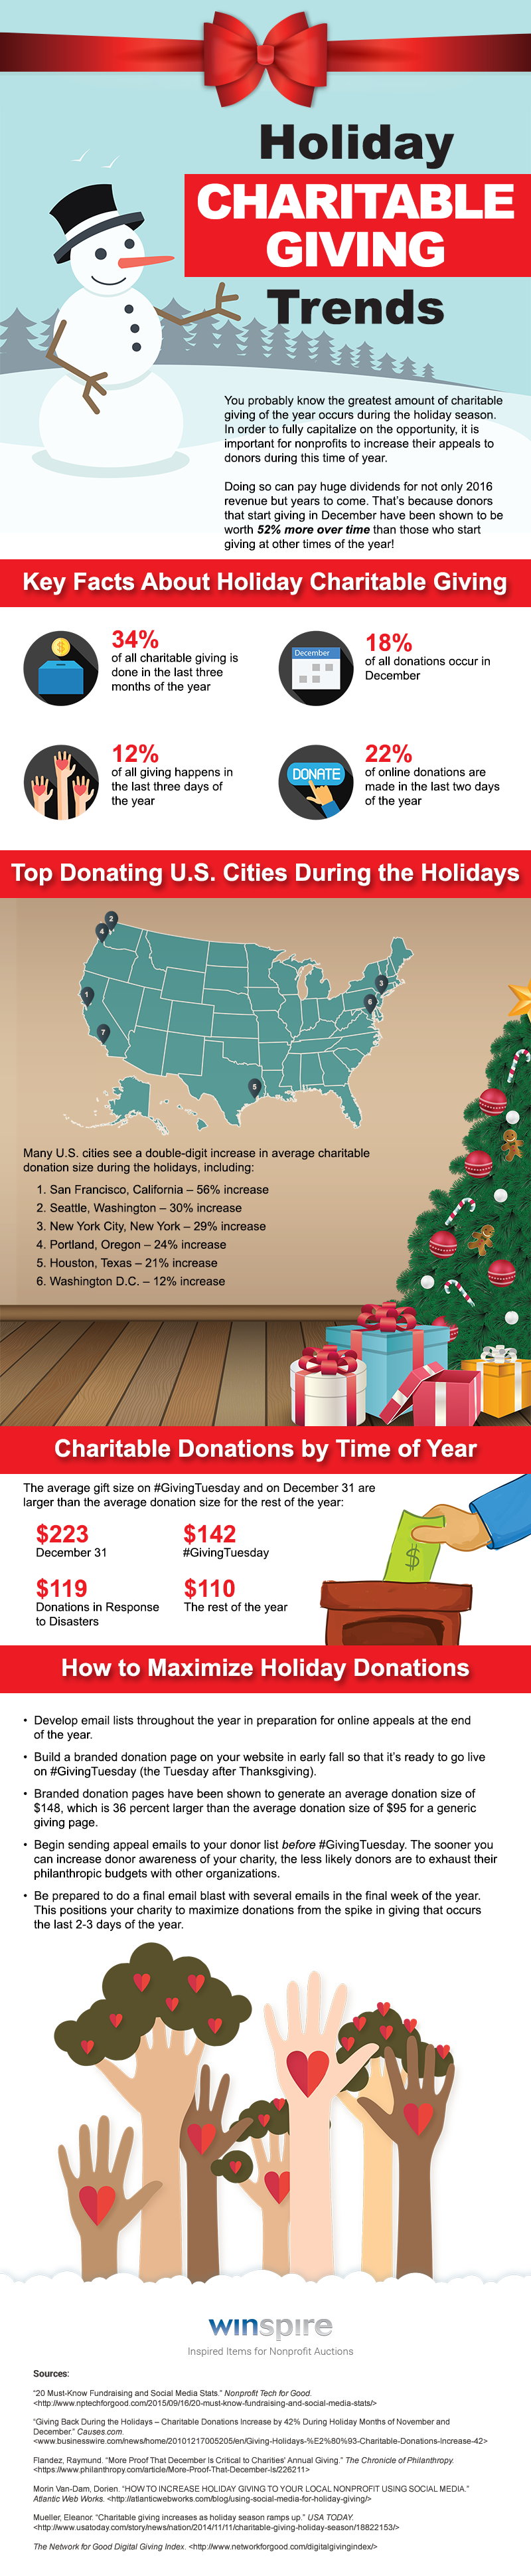 6 ideas for a creative effective holiday giving campaign infographic